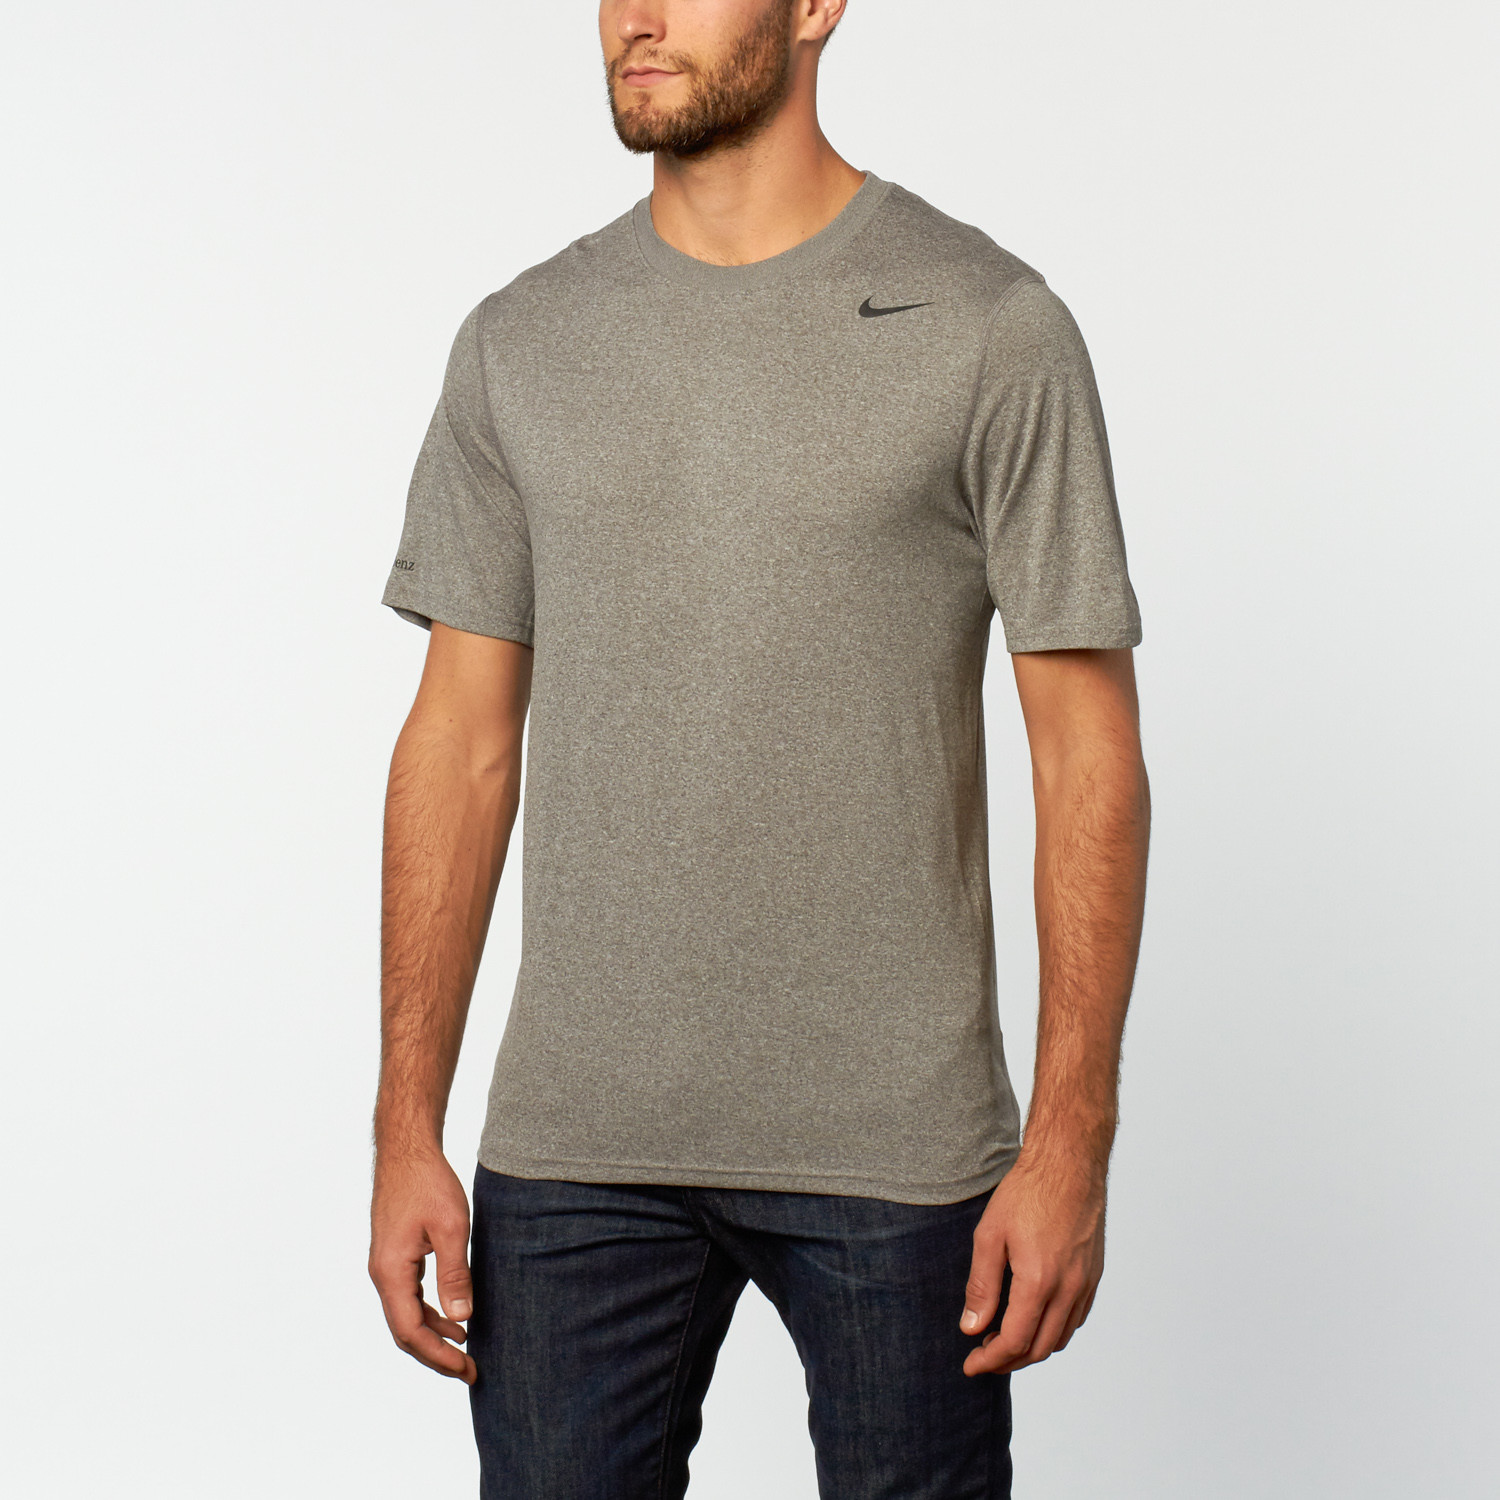 Nike performance training tee grey s mercedes benz for Mercedes benz wear